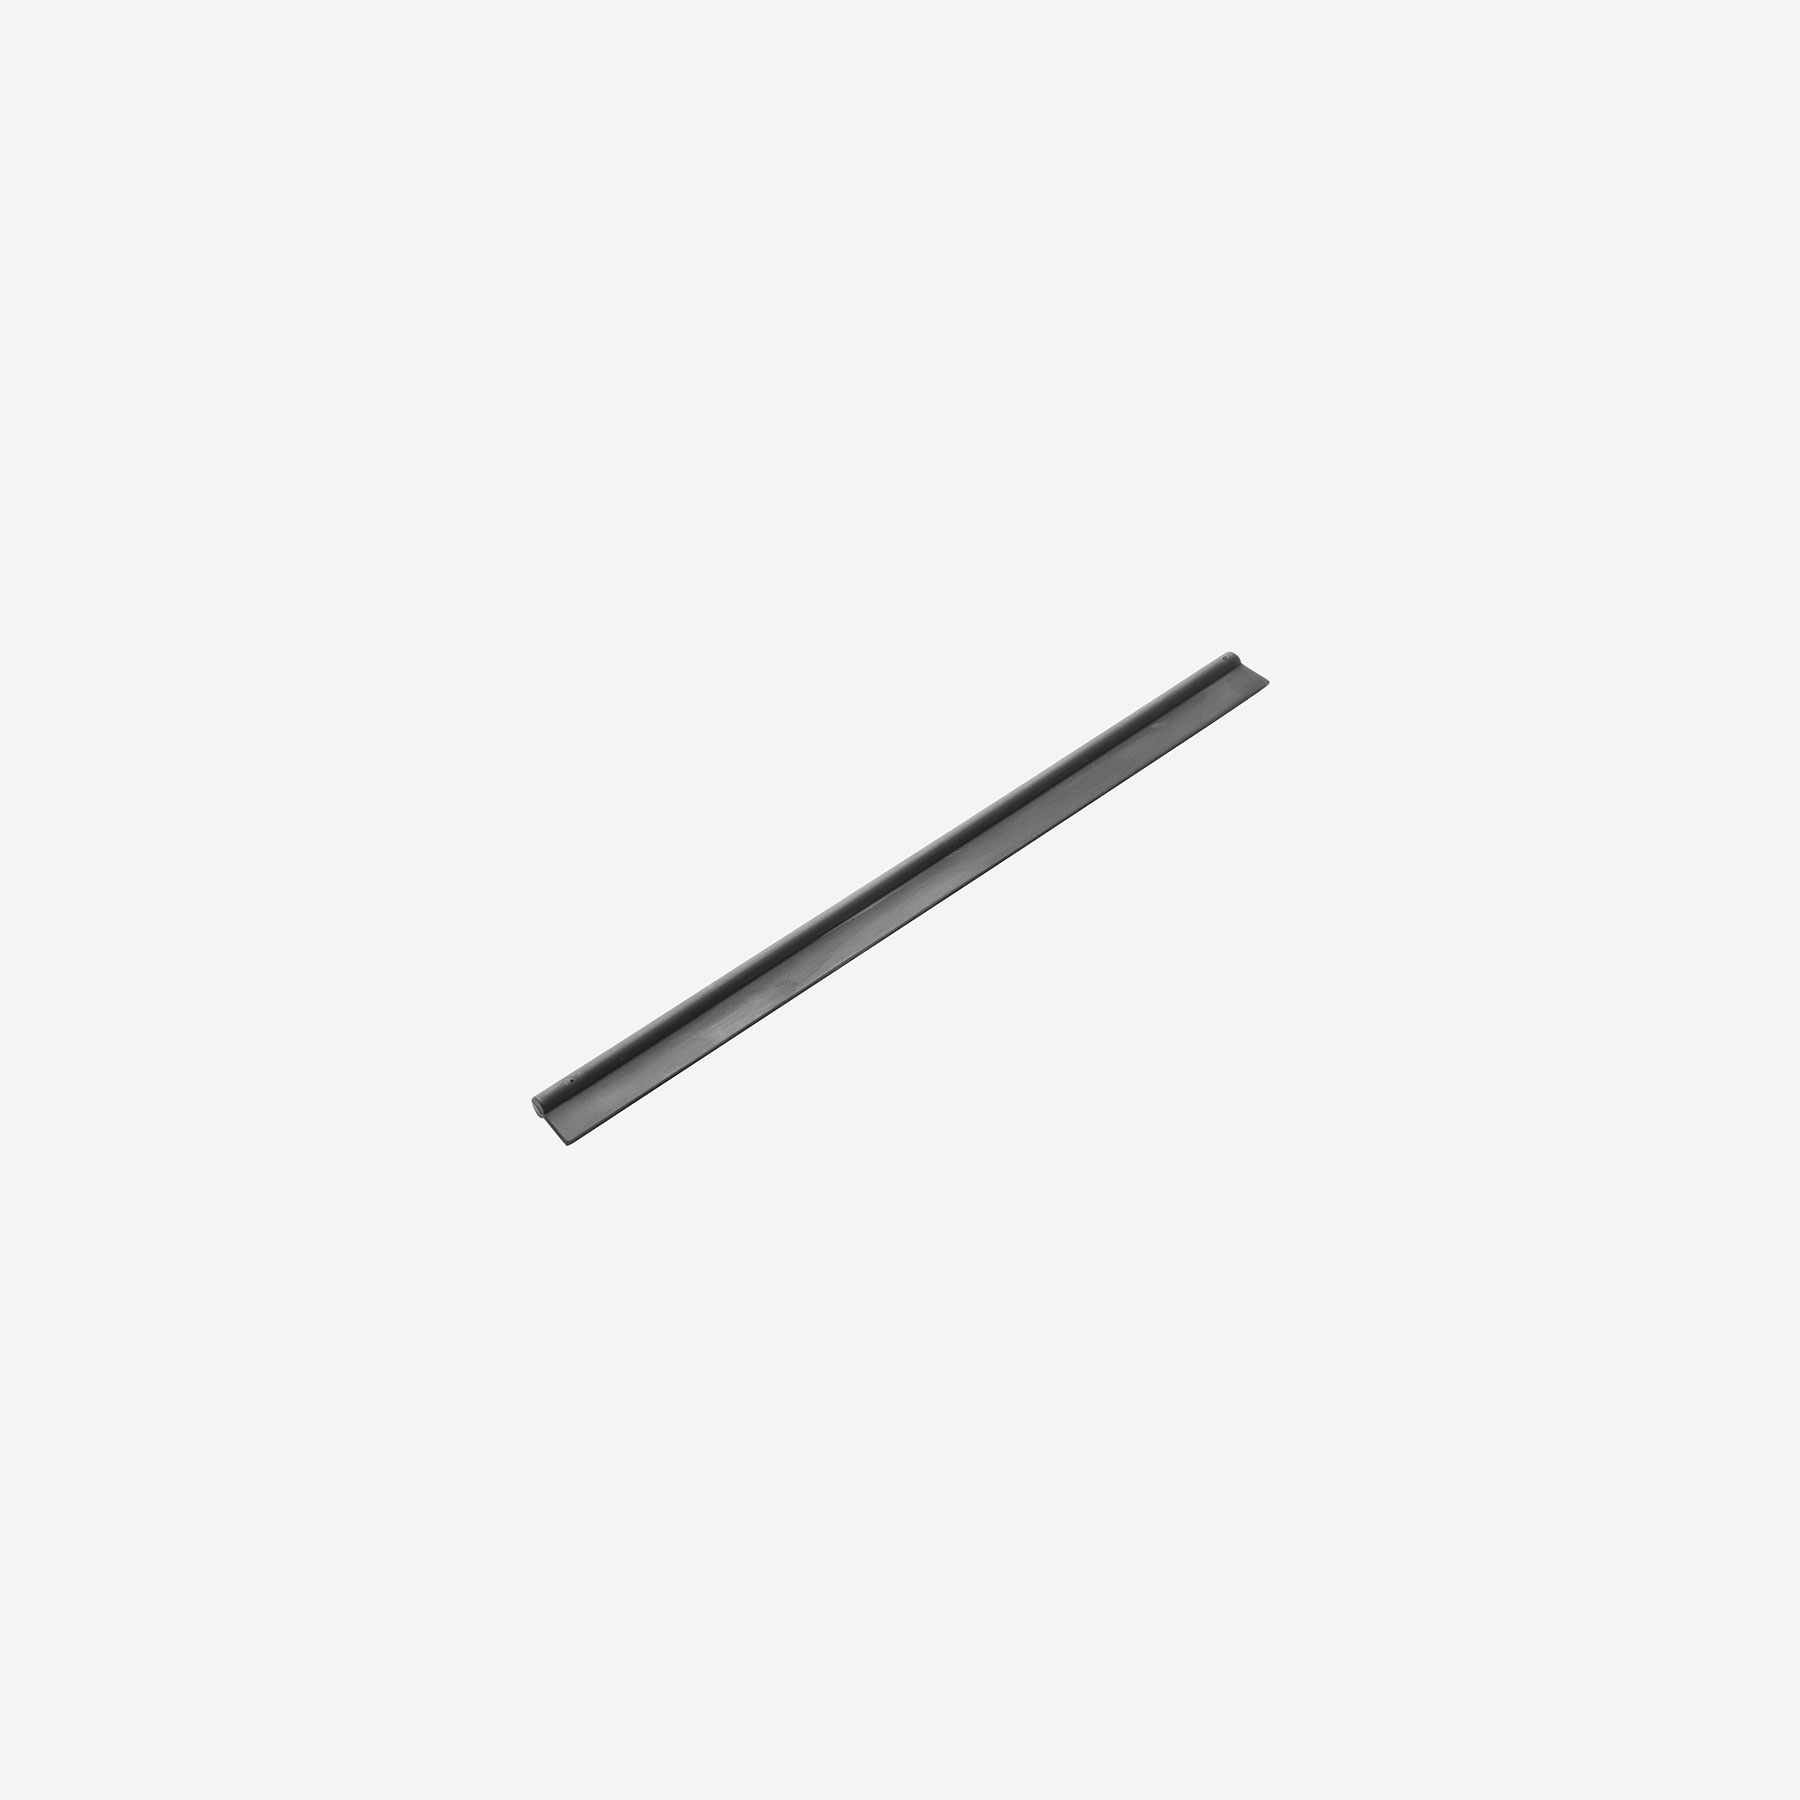 Vipp 2 Shower Wiper Replacement Blade